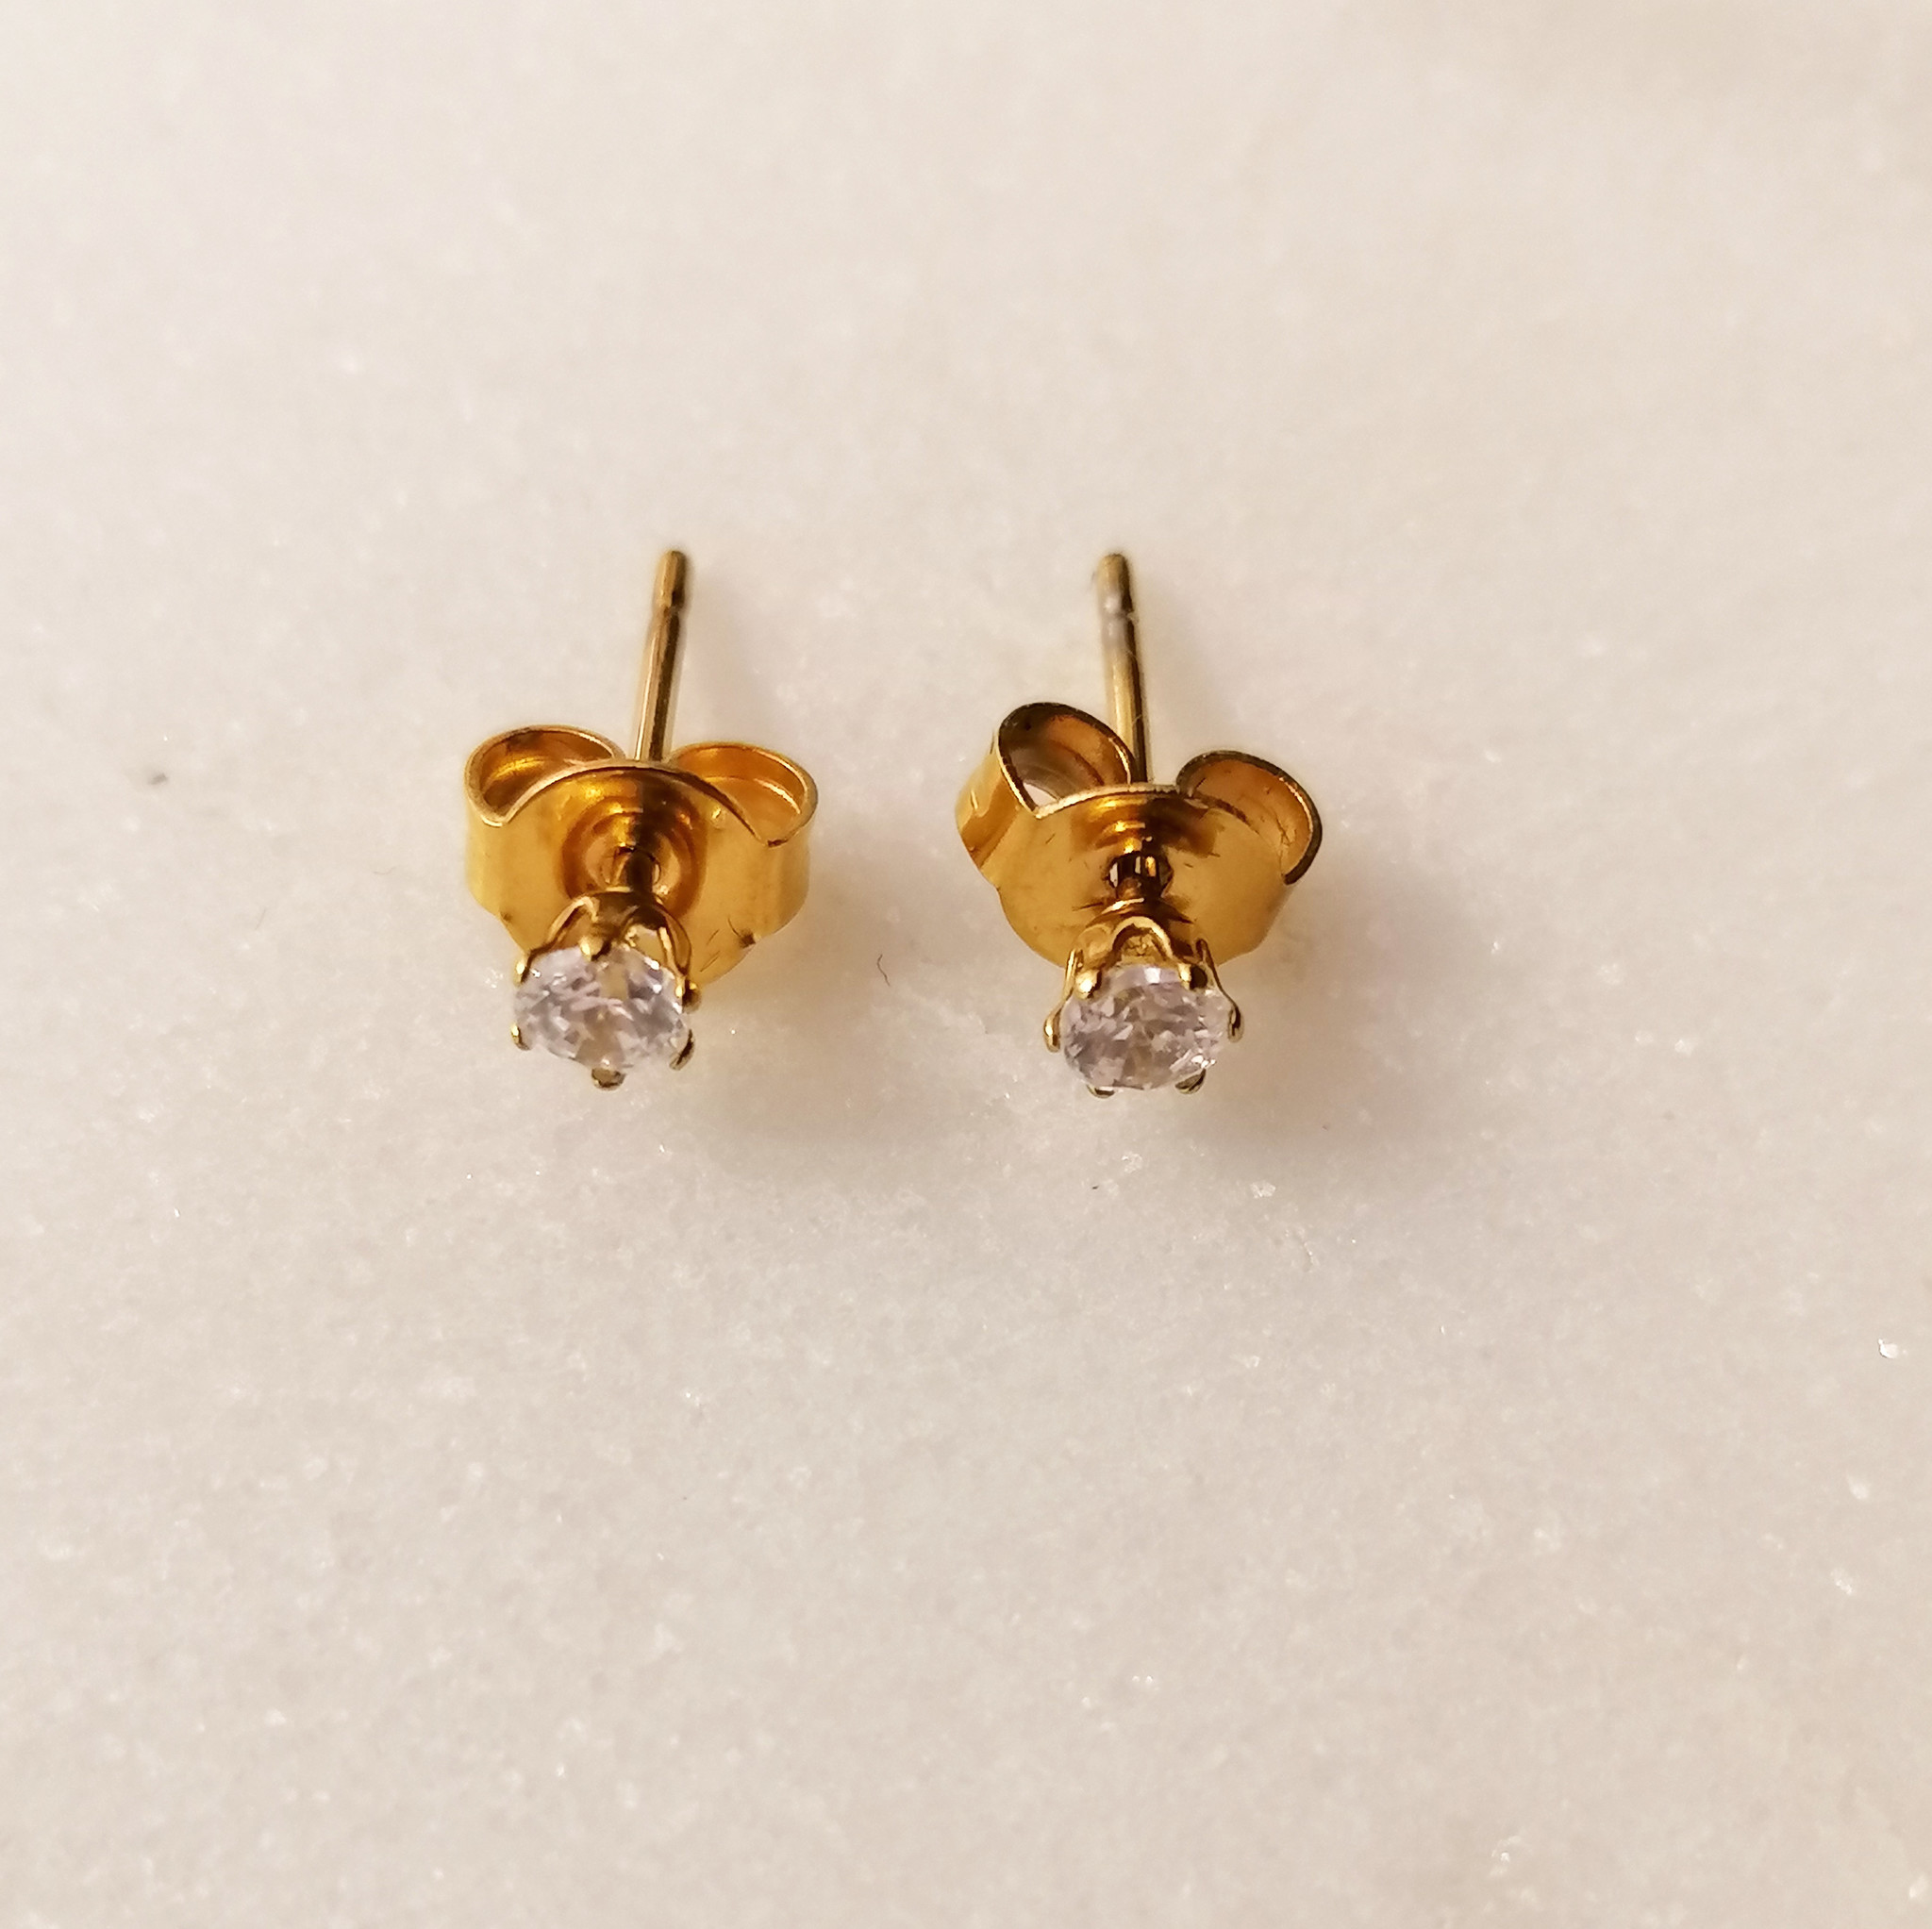 Golden stud earrings with stone - 925 sterling silver-3